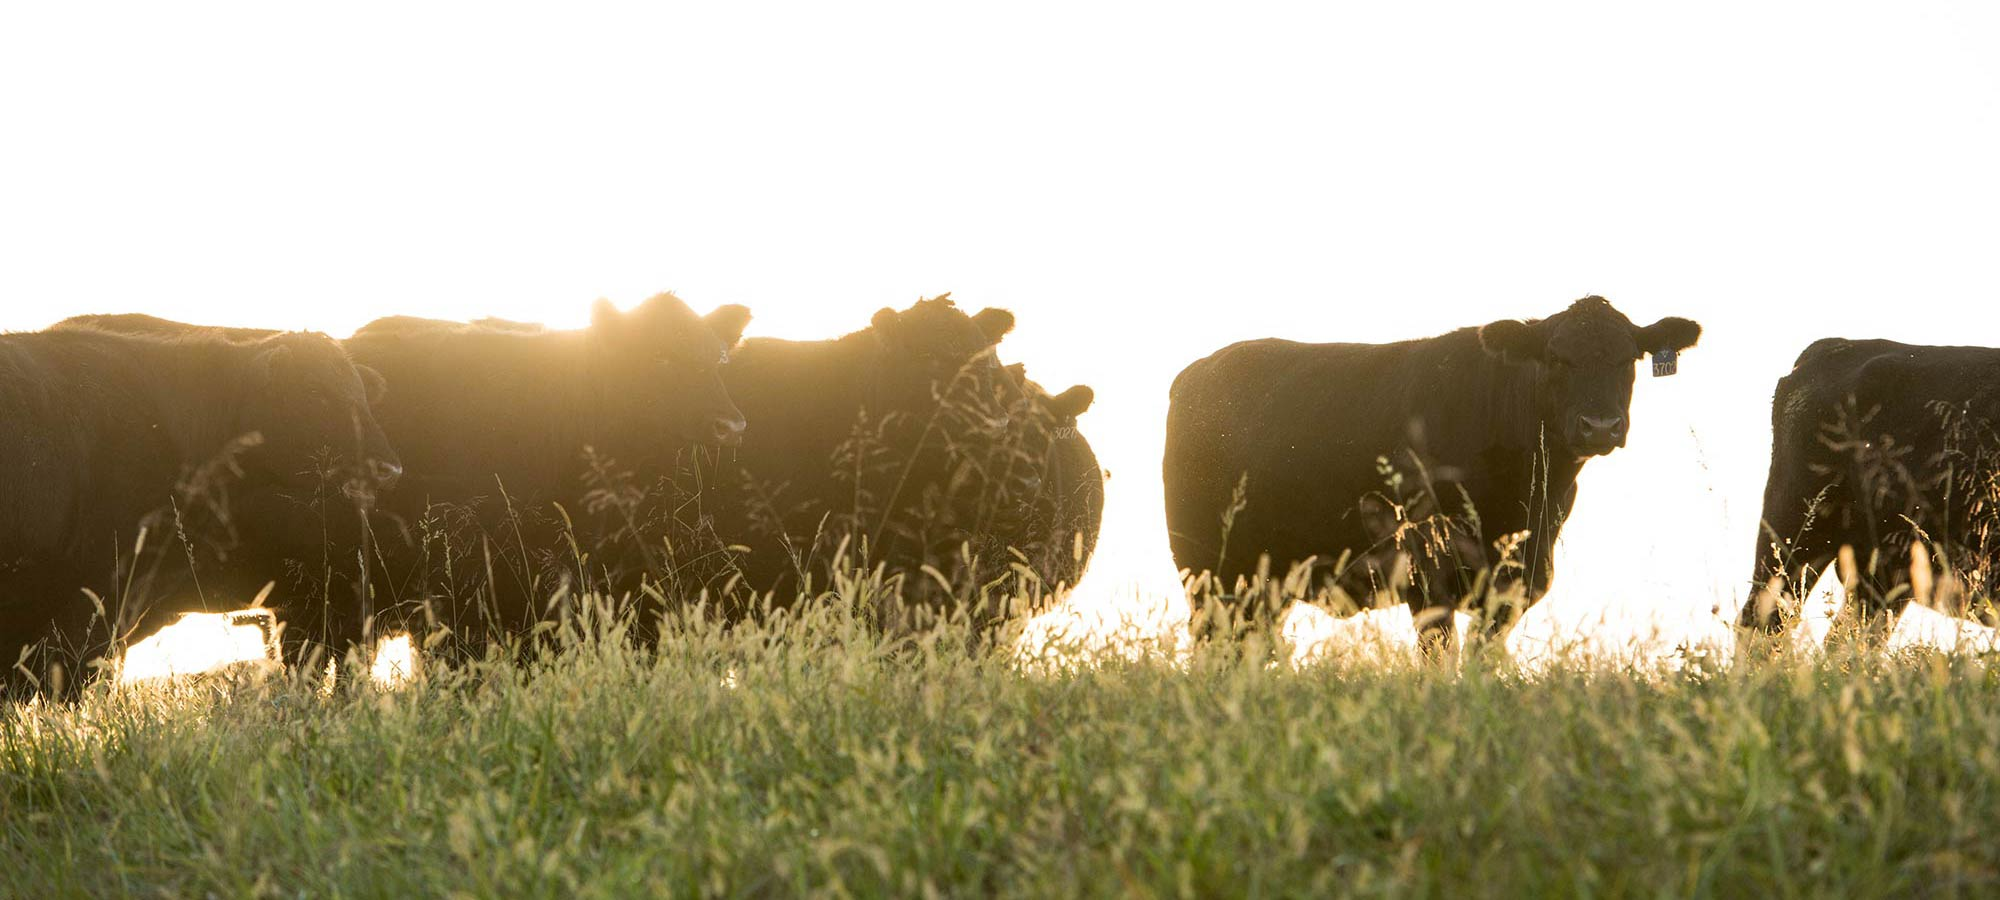 Branch View Angus Cattle Sunset